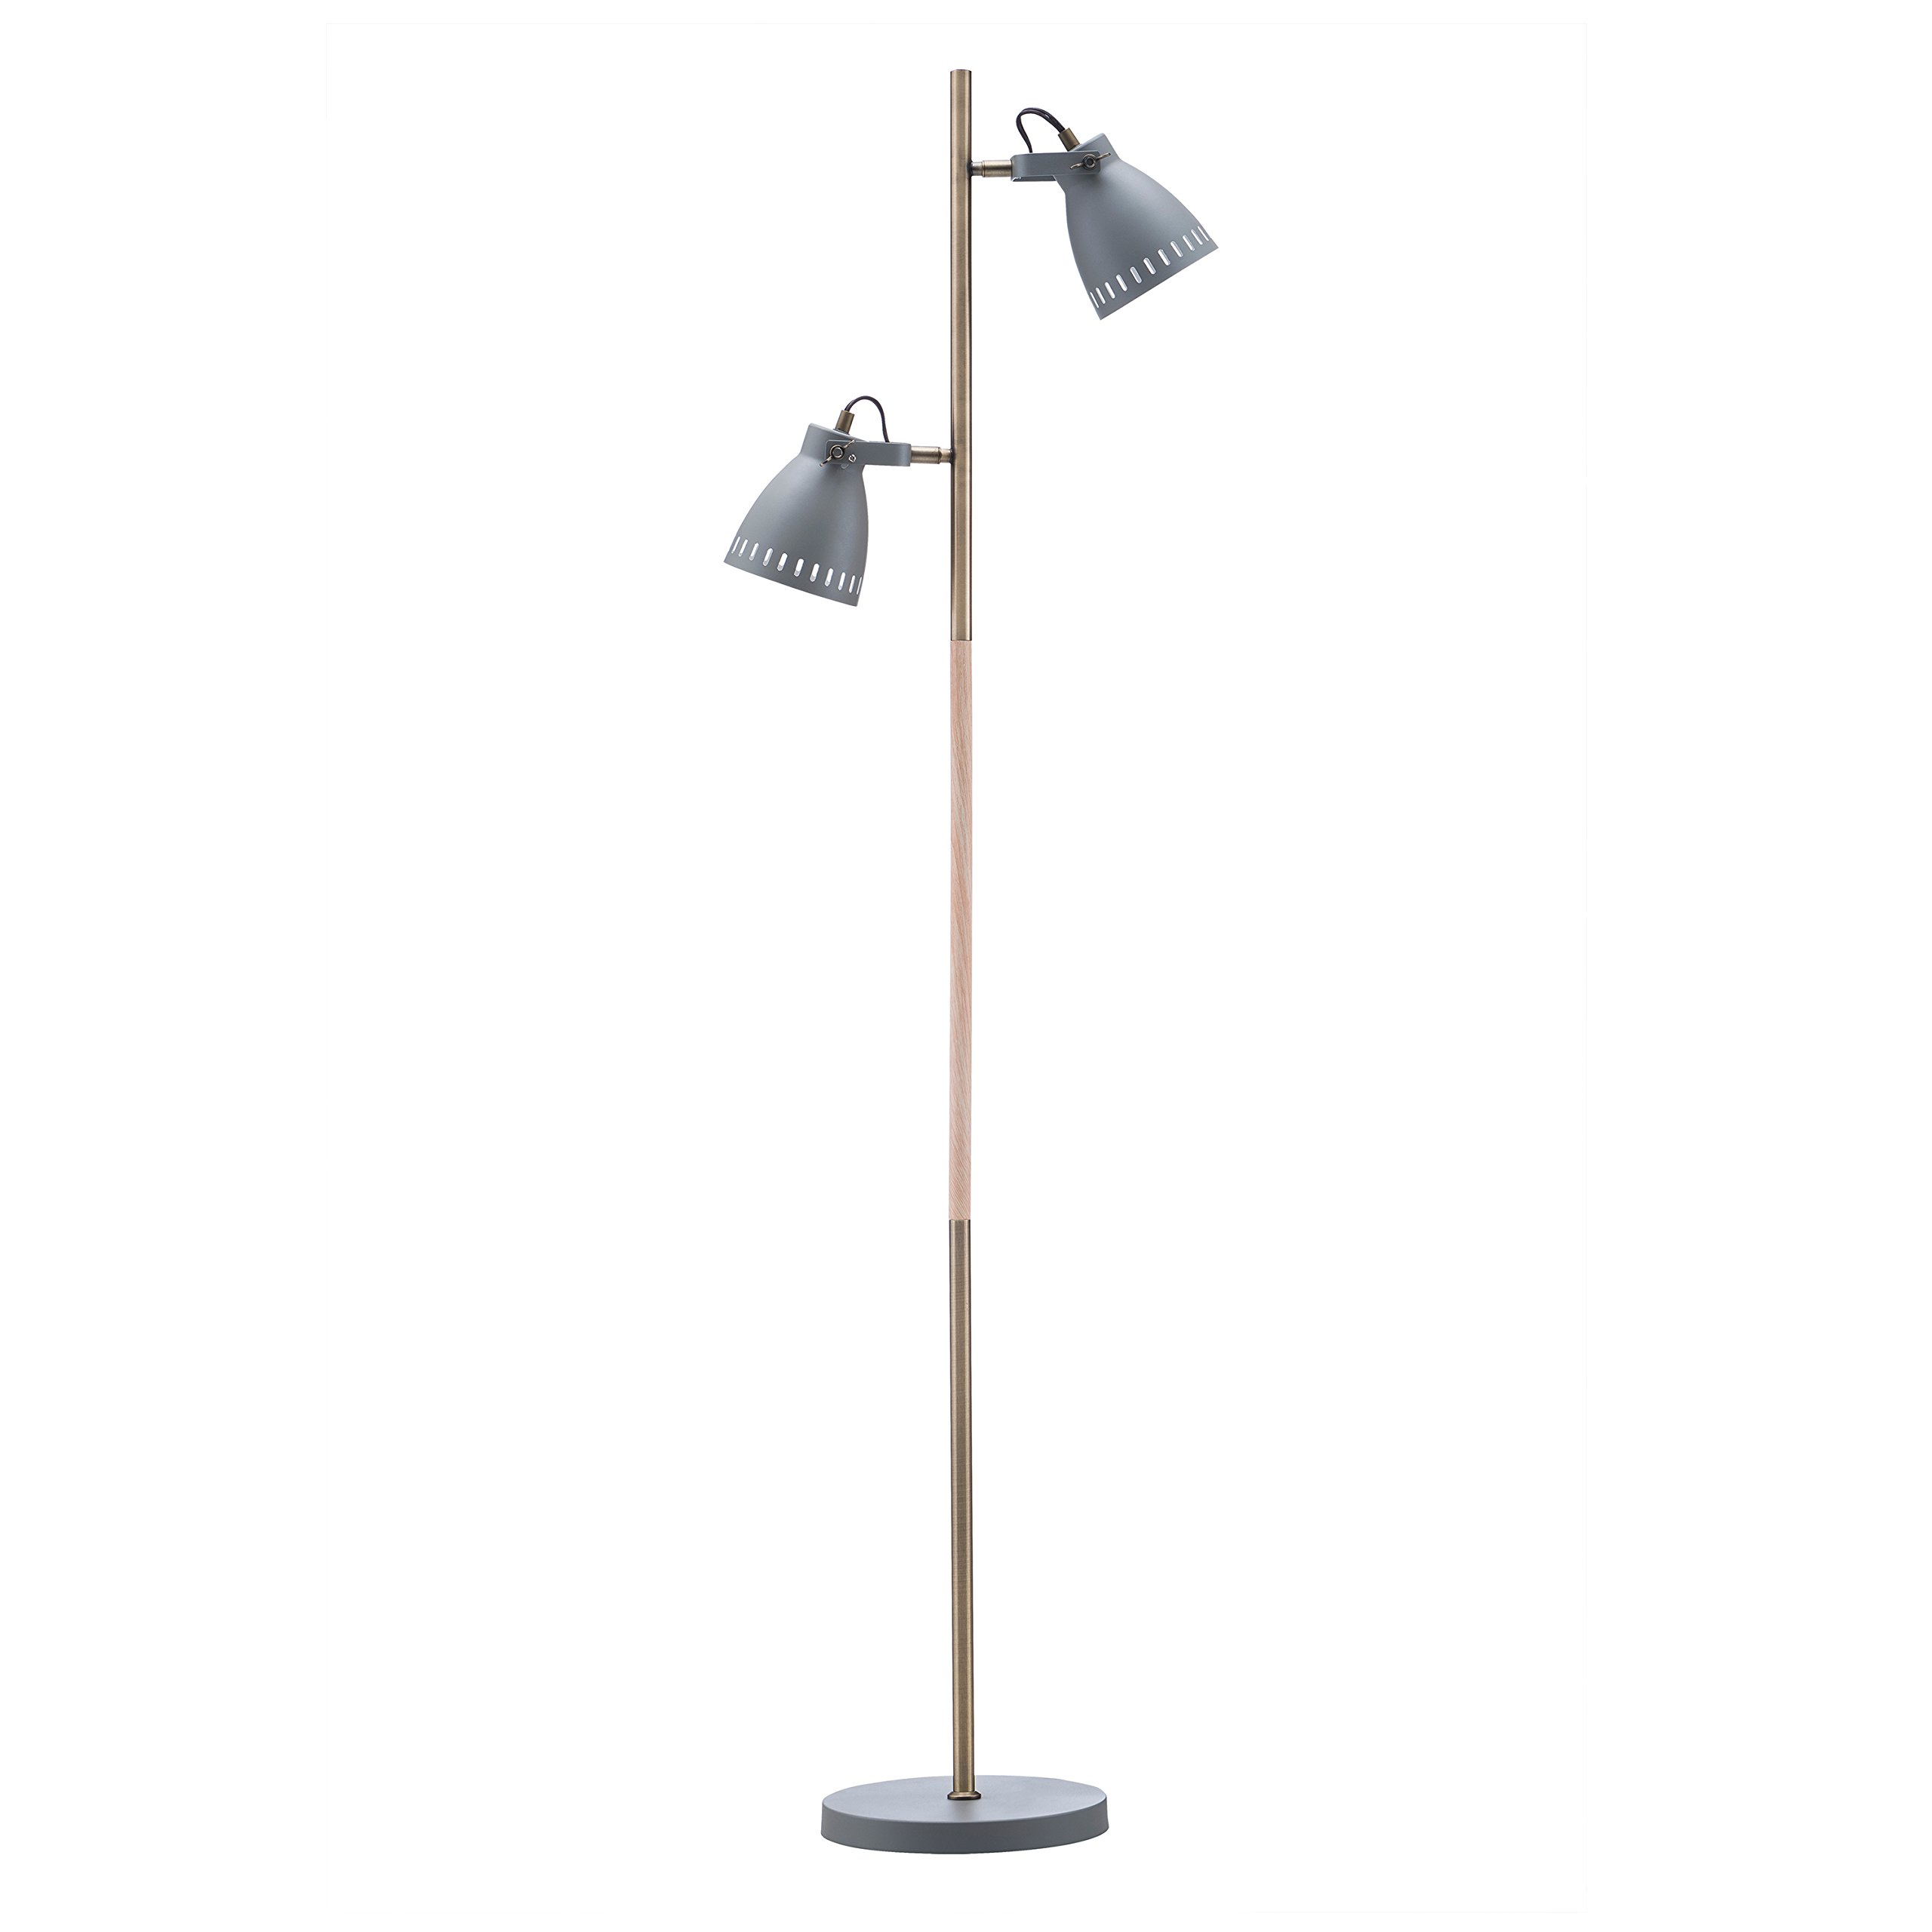 Light Society Tasman Floor Lamp, Sand Textured Gray with Antique Brass and Wood Finished Body, Mid Century Modern Industrial Style (LS-F203-GRY)